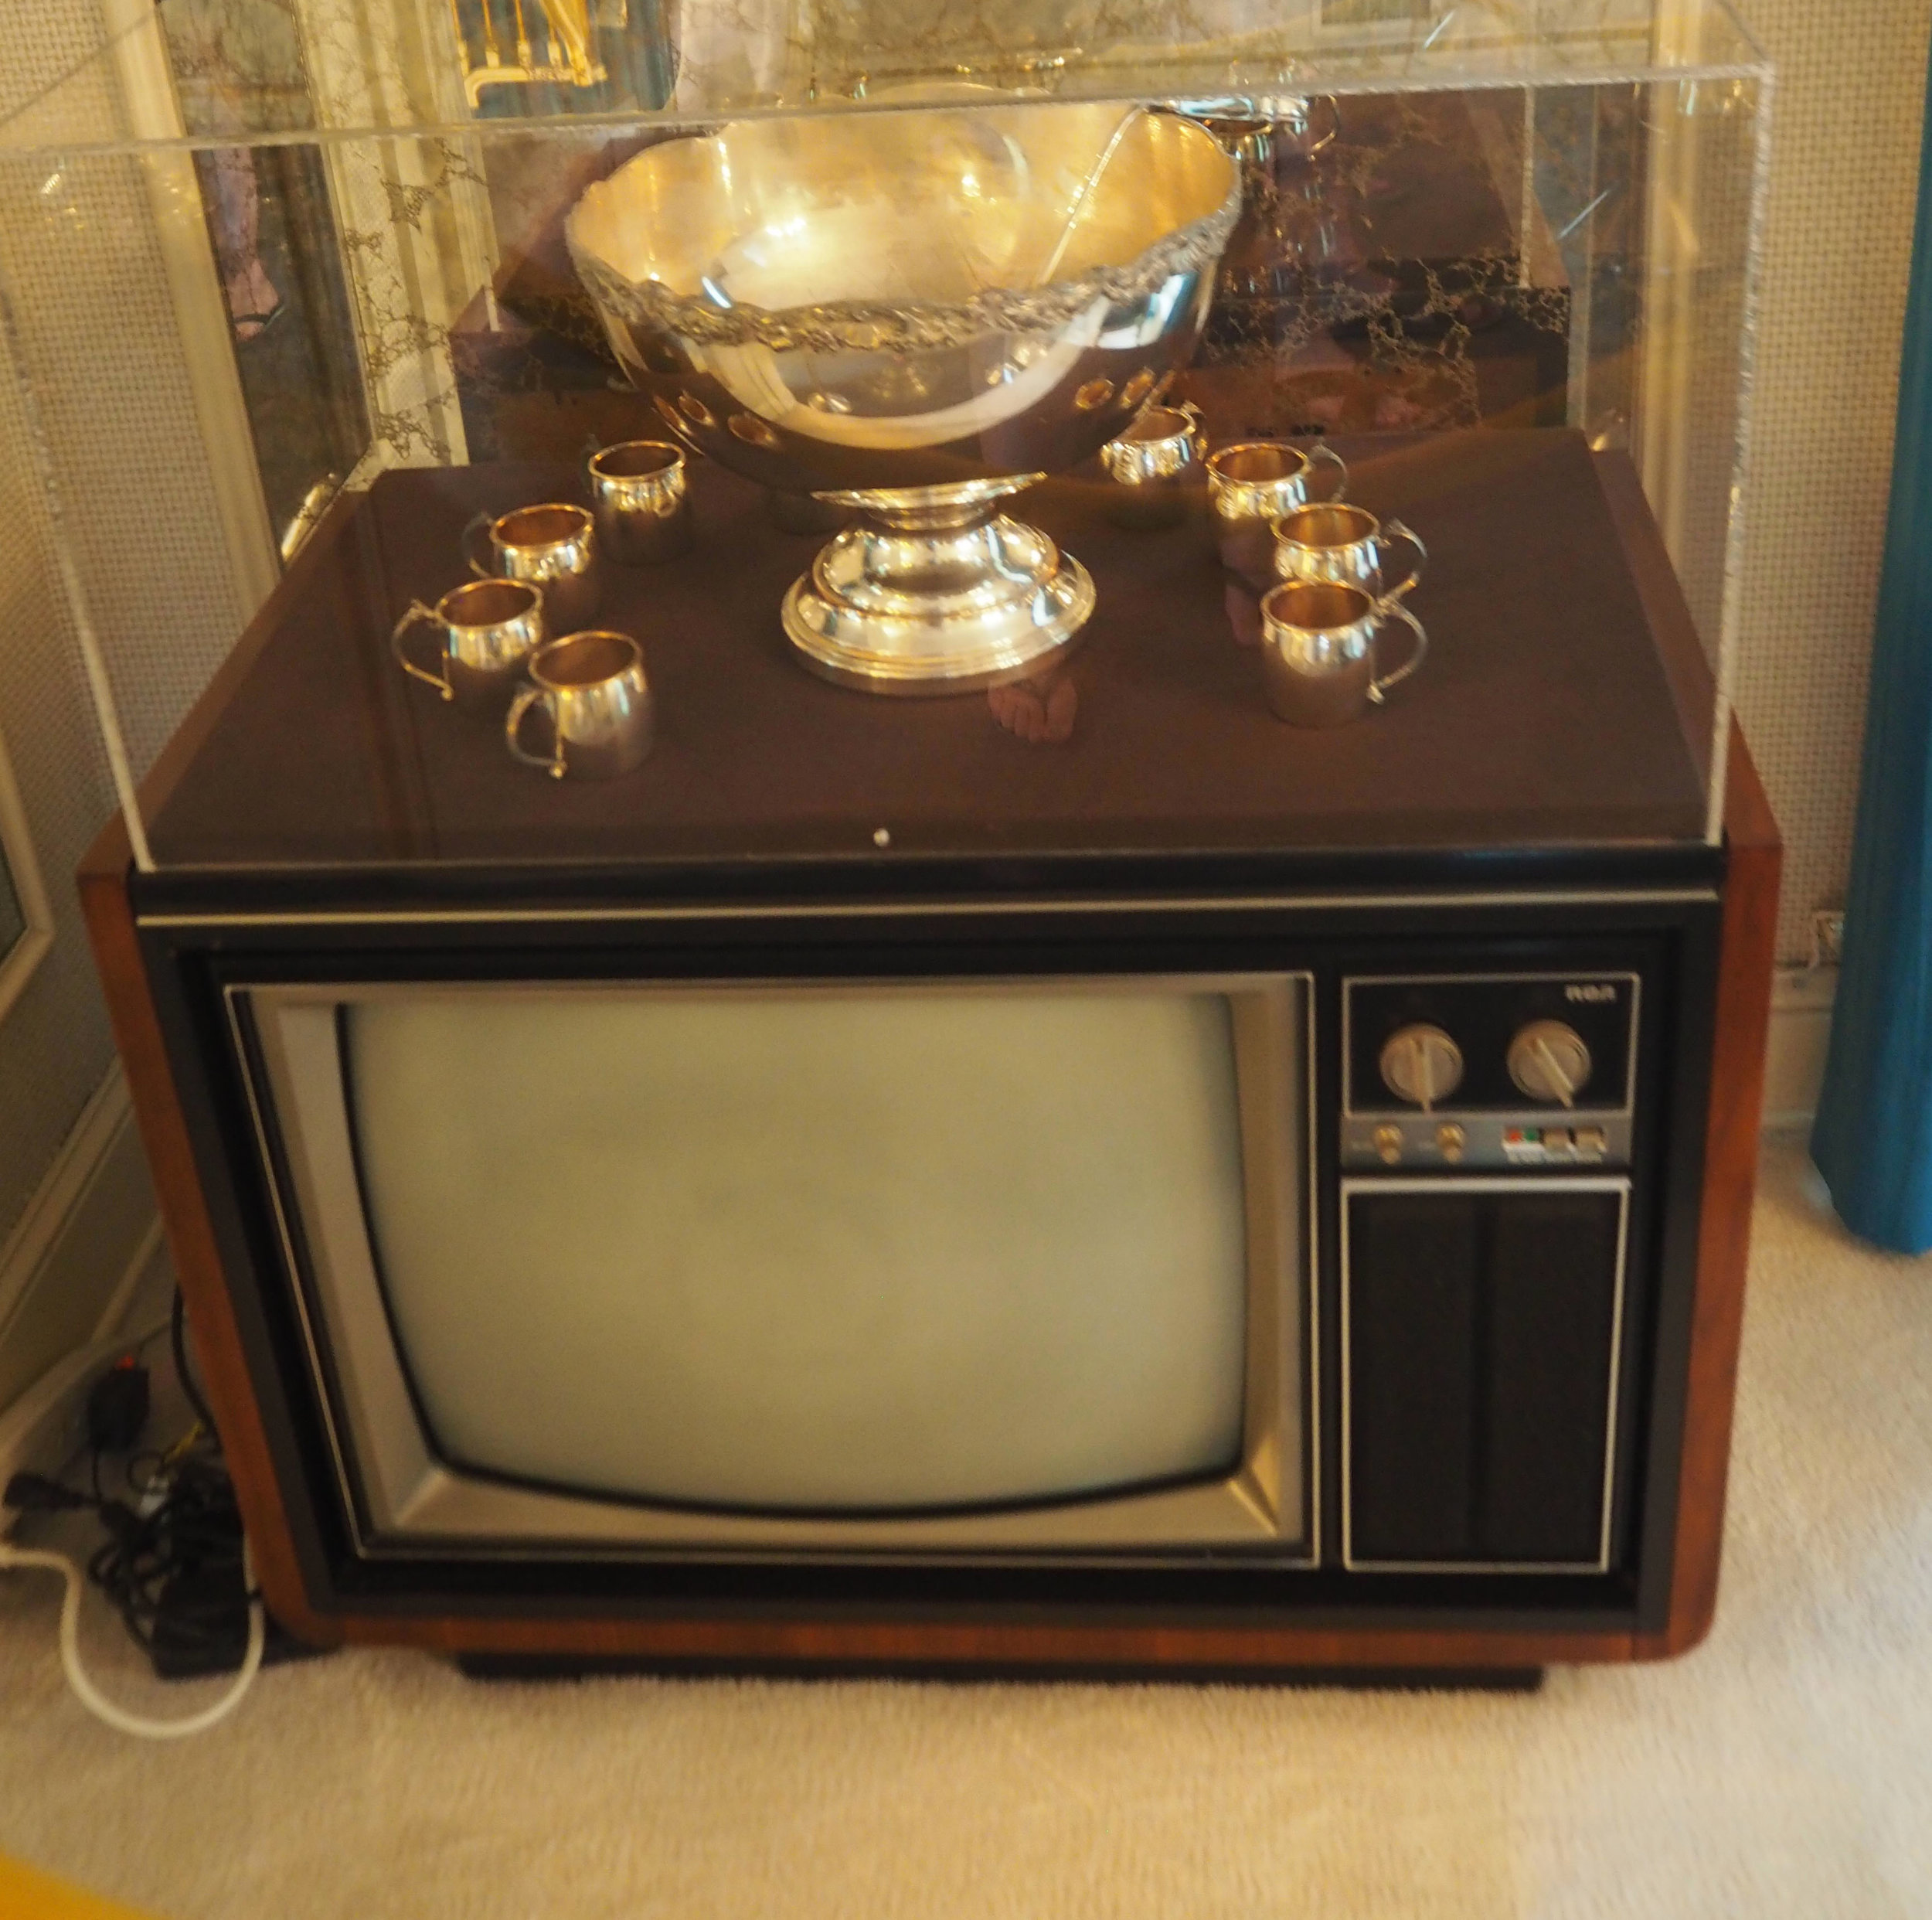 One of 16 TV'S which Elvis had in Graceland. Inside the dining room at Elvis Presley's Graceland. To see more pics, click on the photo.